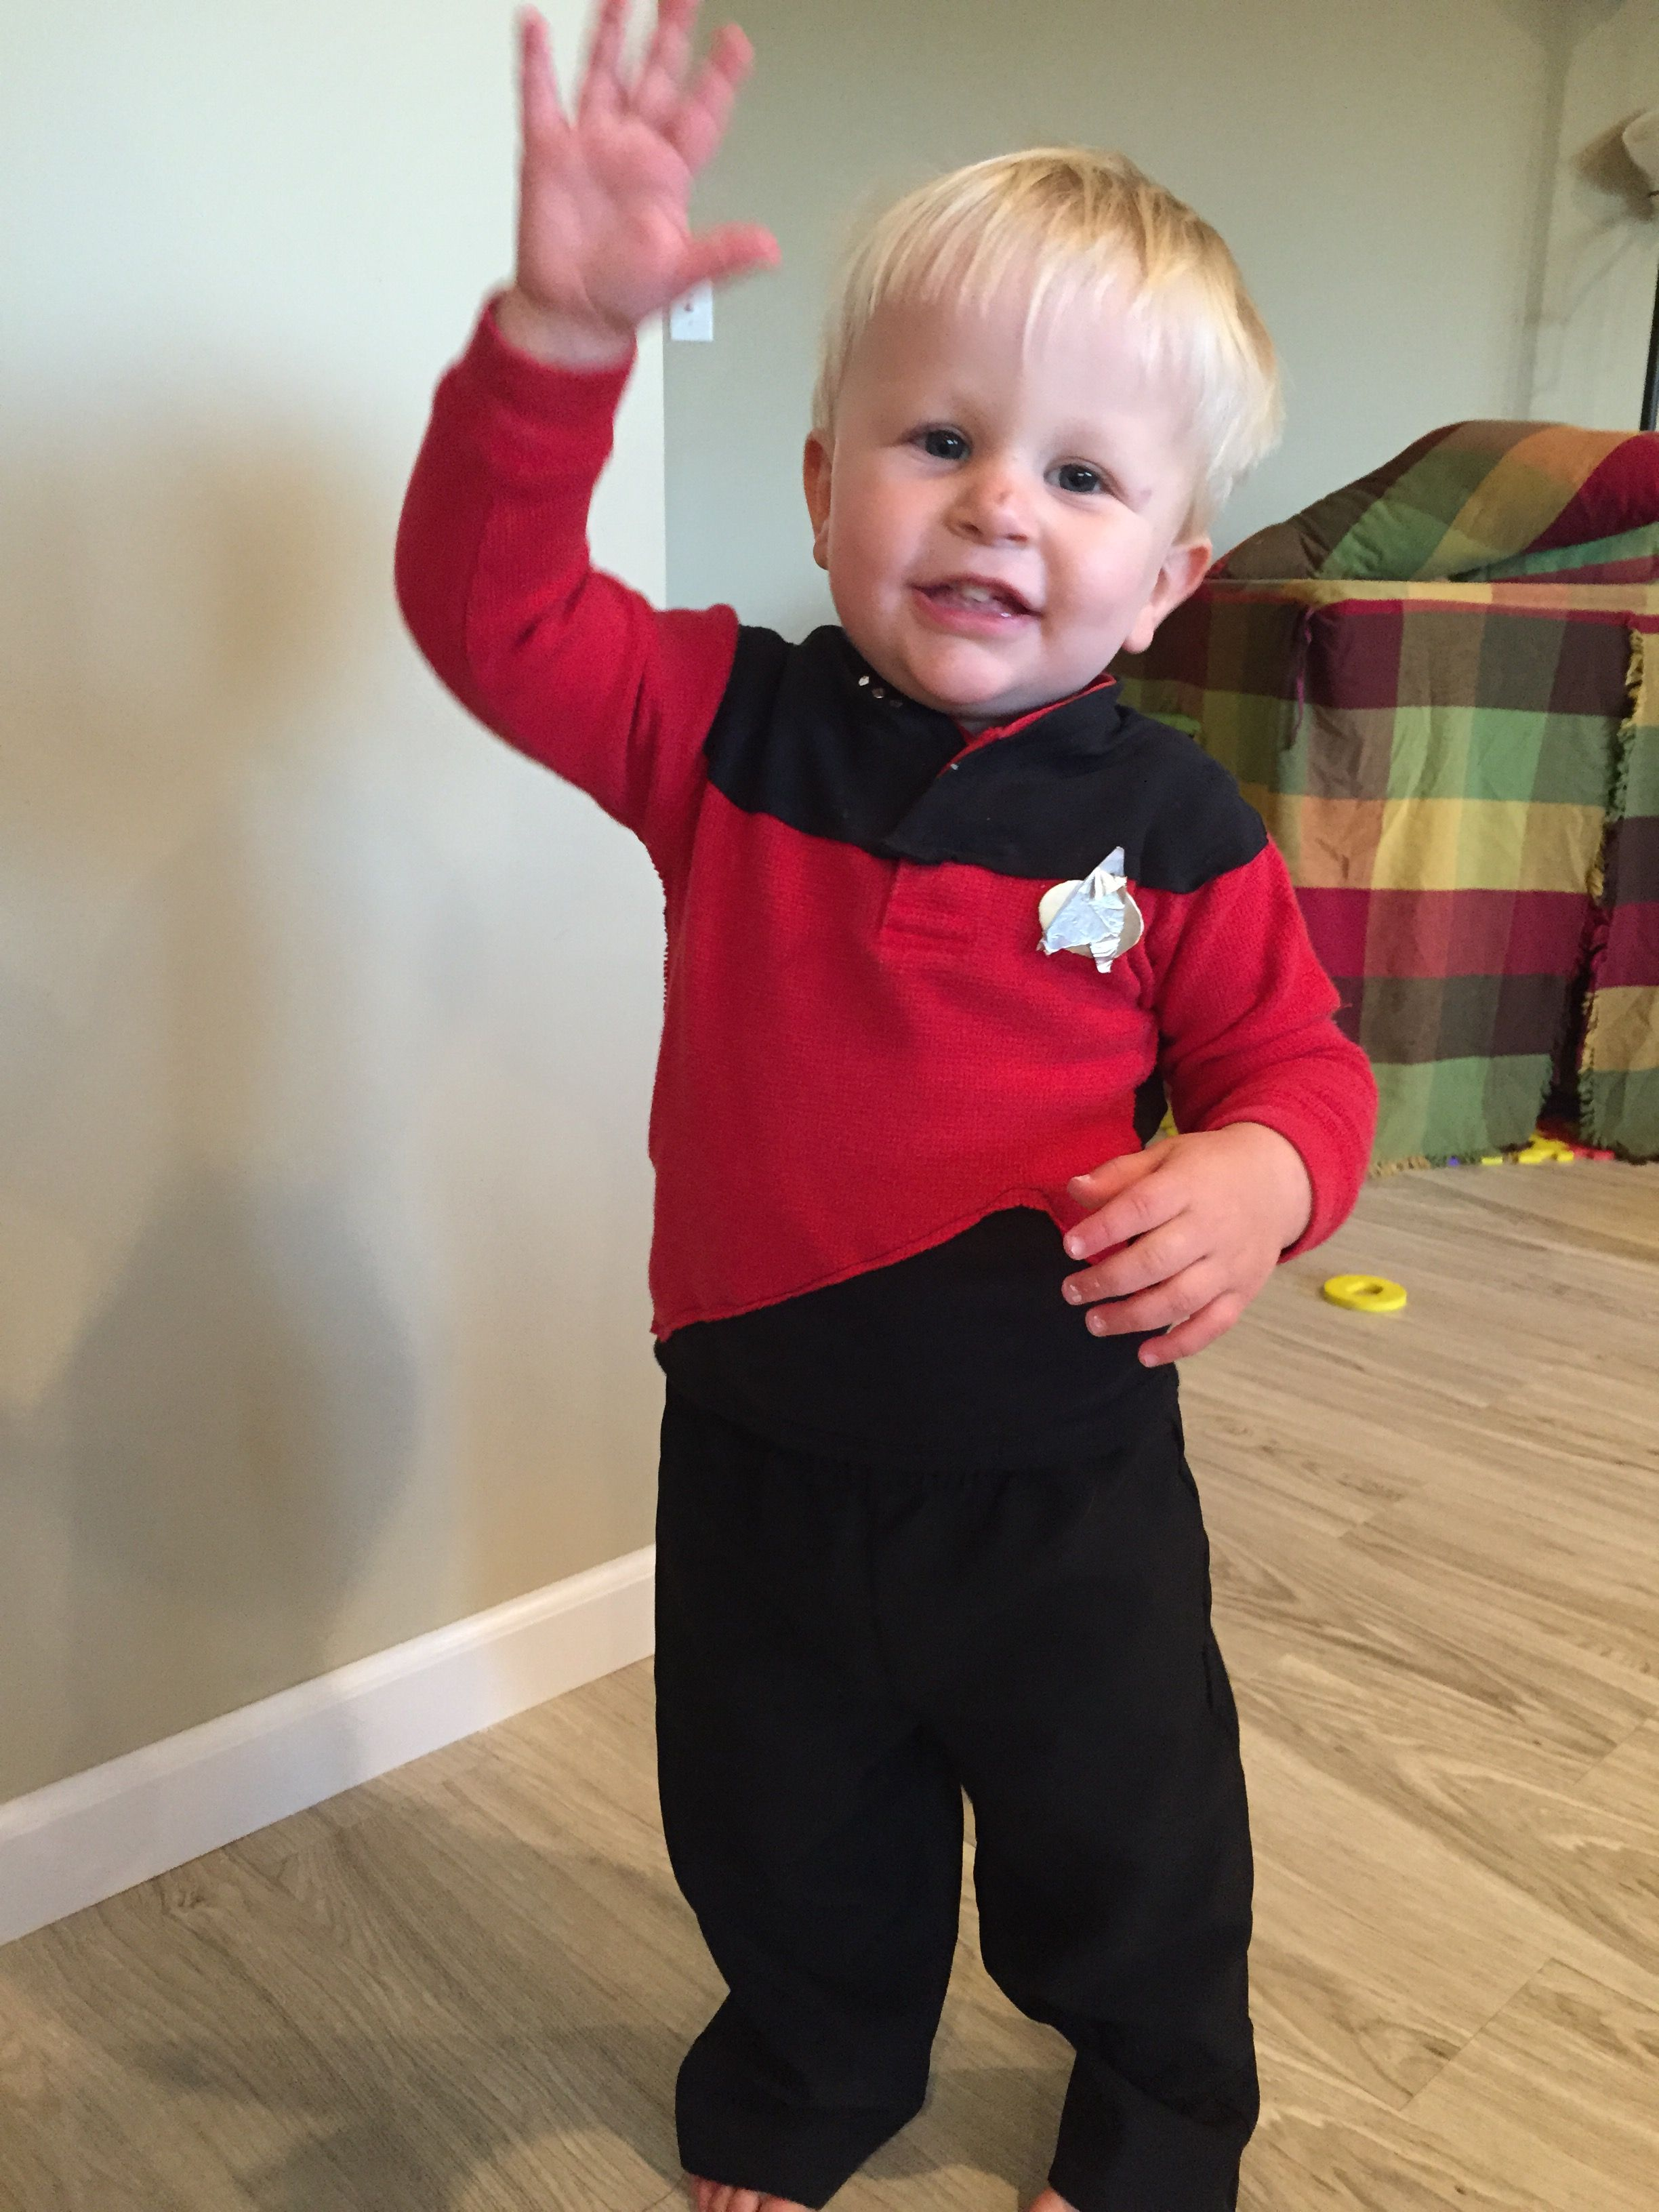 Diy Star Trek Costume Success What A Cute 18 Month Old Captain Picard I Made By Sewing Black T Sh Star Trek Costume Diy Superhero Costume Super Hero Costumes